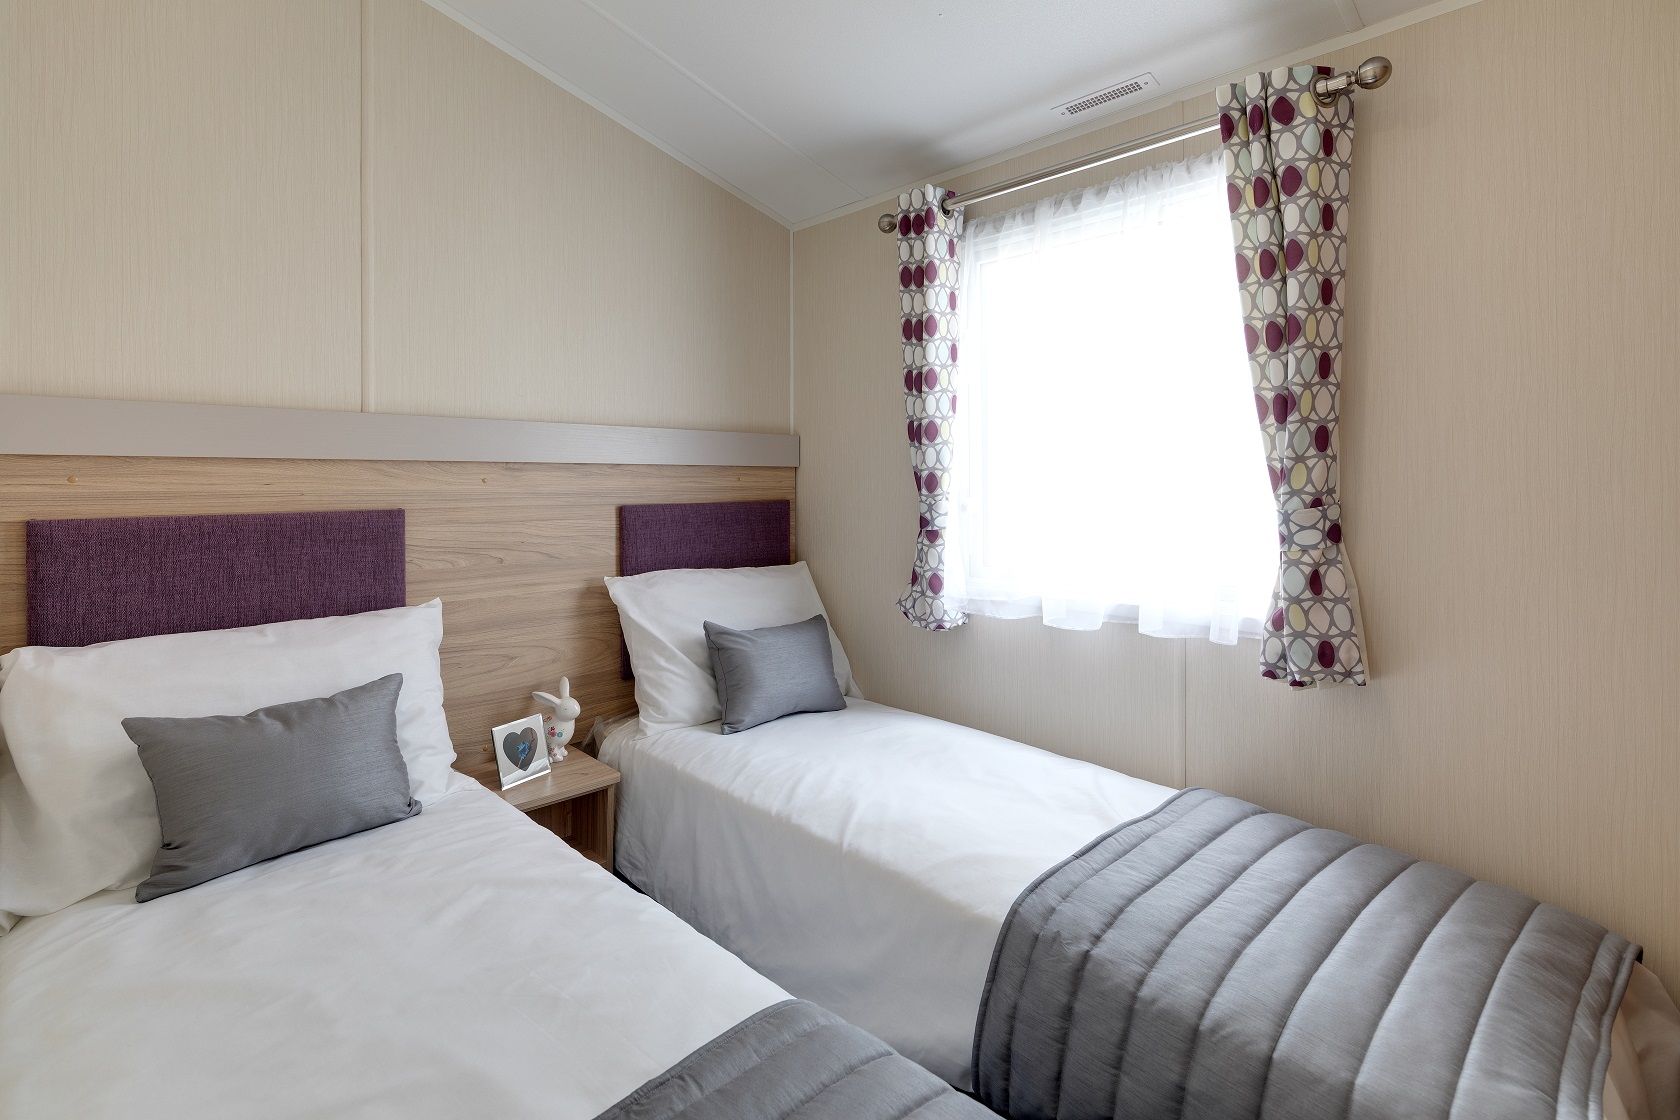 Willerby Linwood: New Static Caravans and Holiday Homes for Sale, Clifton, Morpeth Image 3